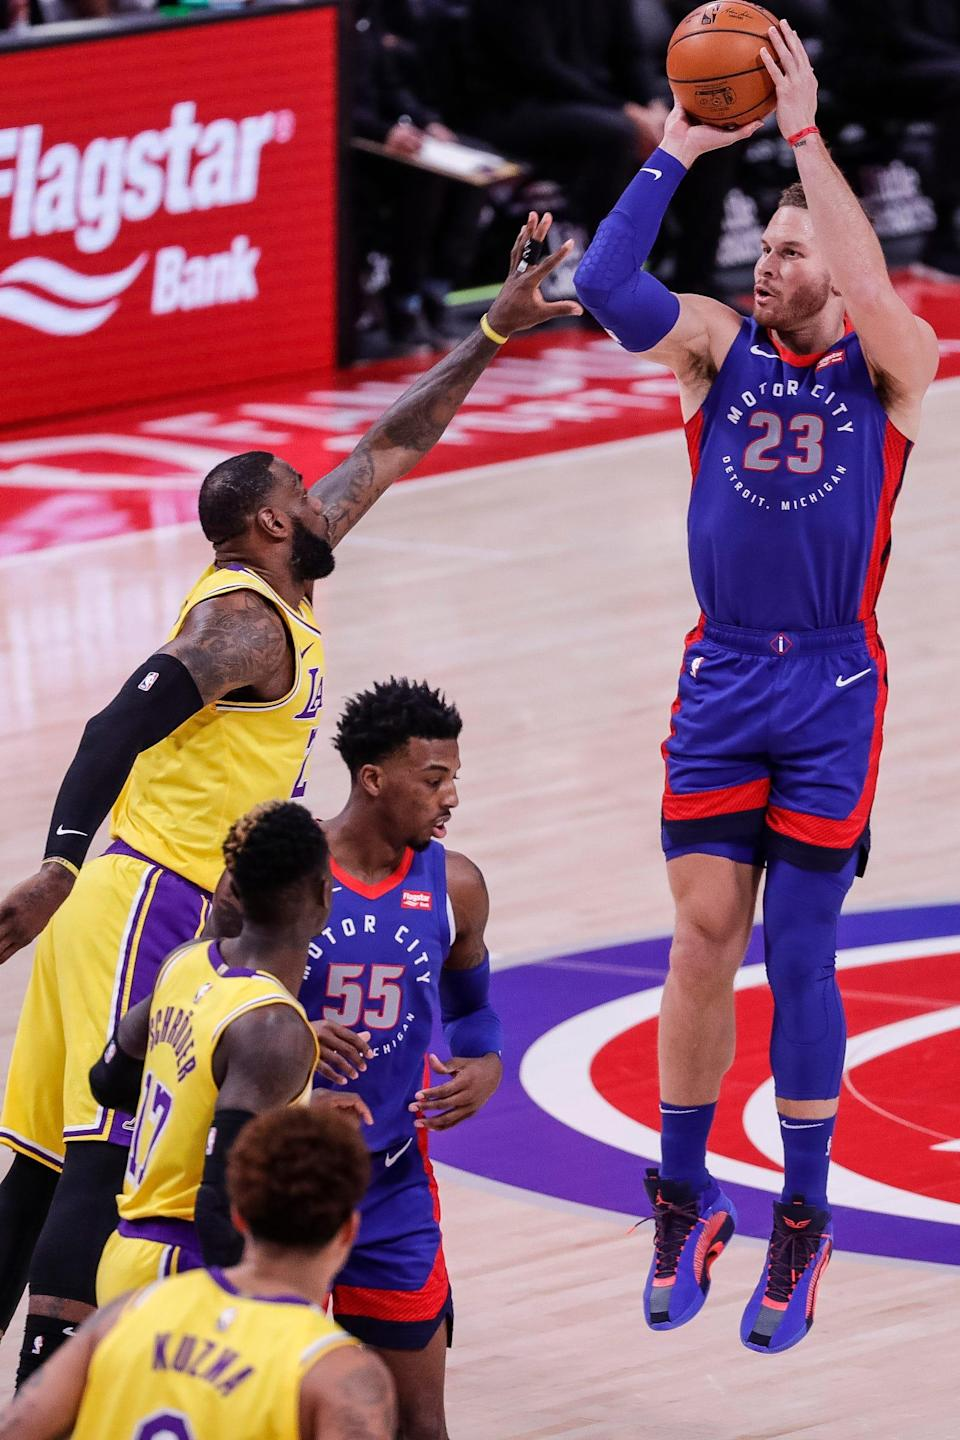 Detroit Pistons forward Blake Griffin (23) makes a jump shot against the Los Angeles Lakers forward LeBron James (23) during the first half of Thursday, January 28, 2021 at the Little Caesars Arena in Detroit.